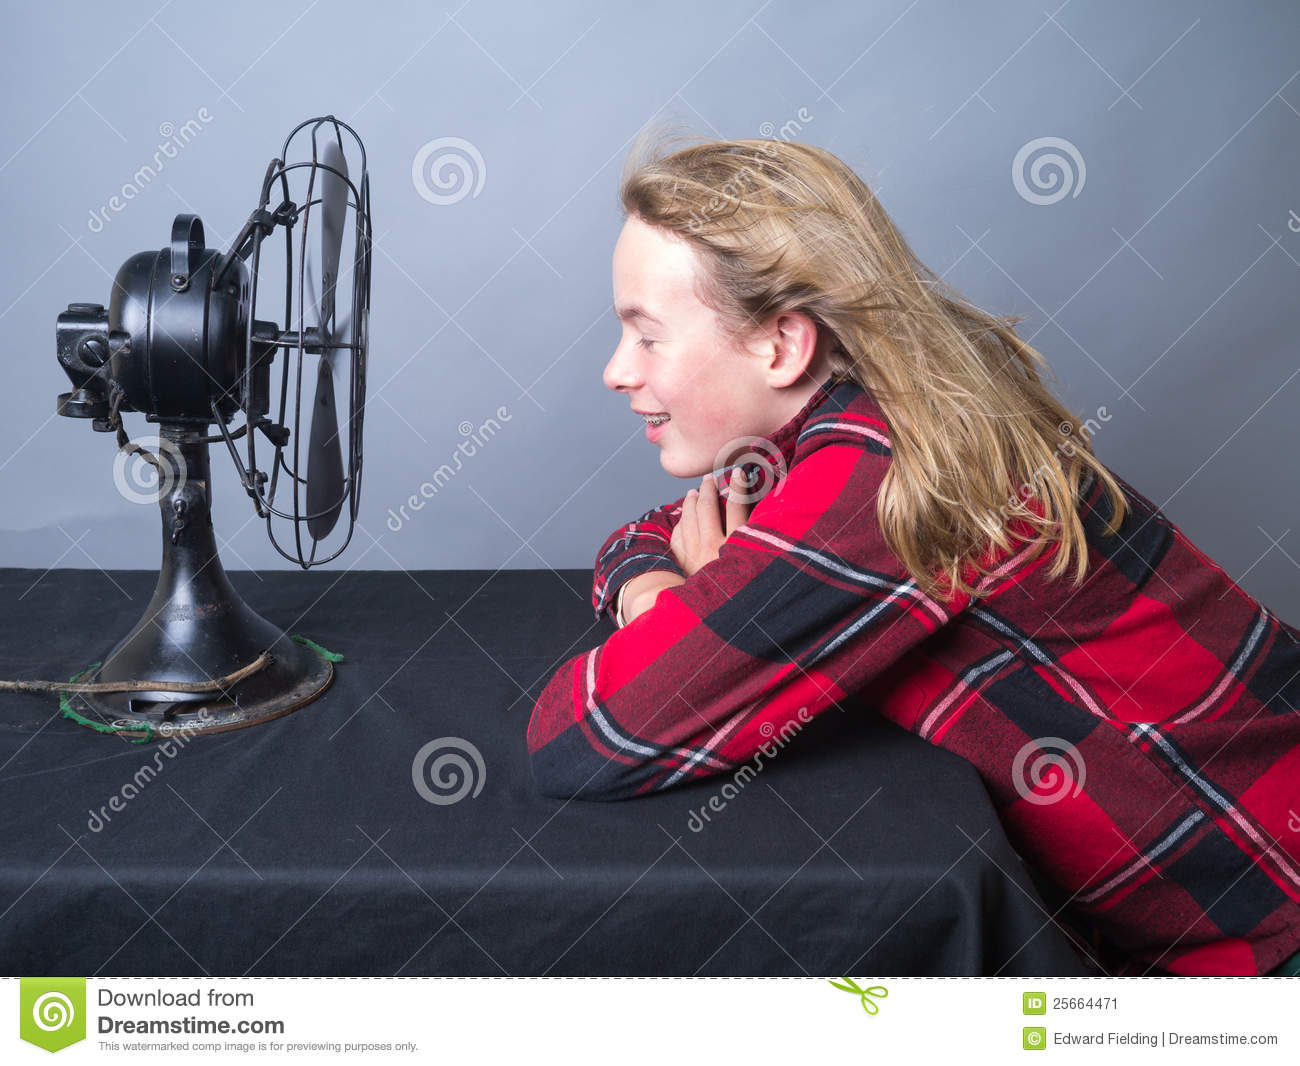 Cooling Off With Fan : Teenager cooling off in front of fan stock image